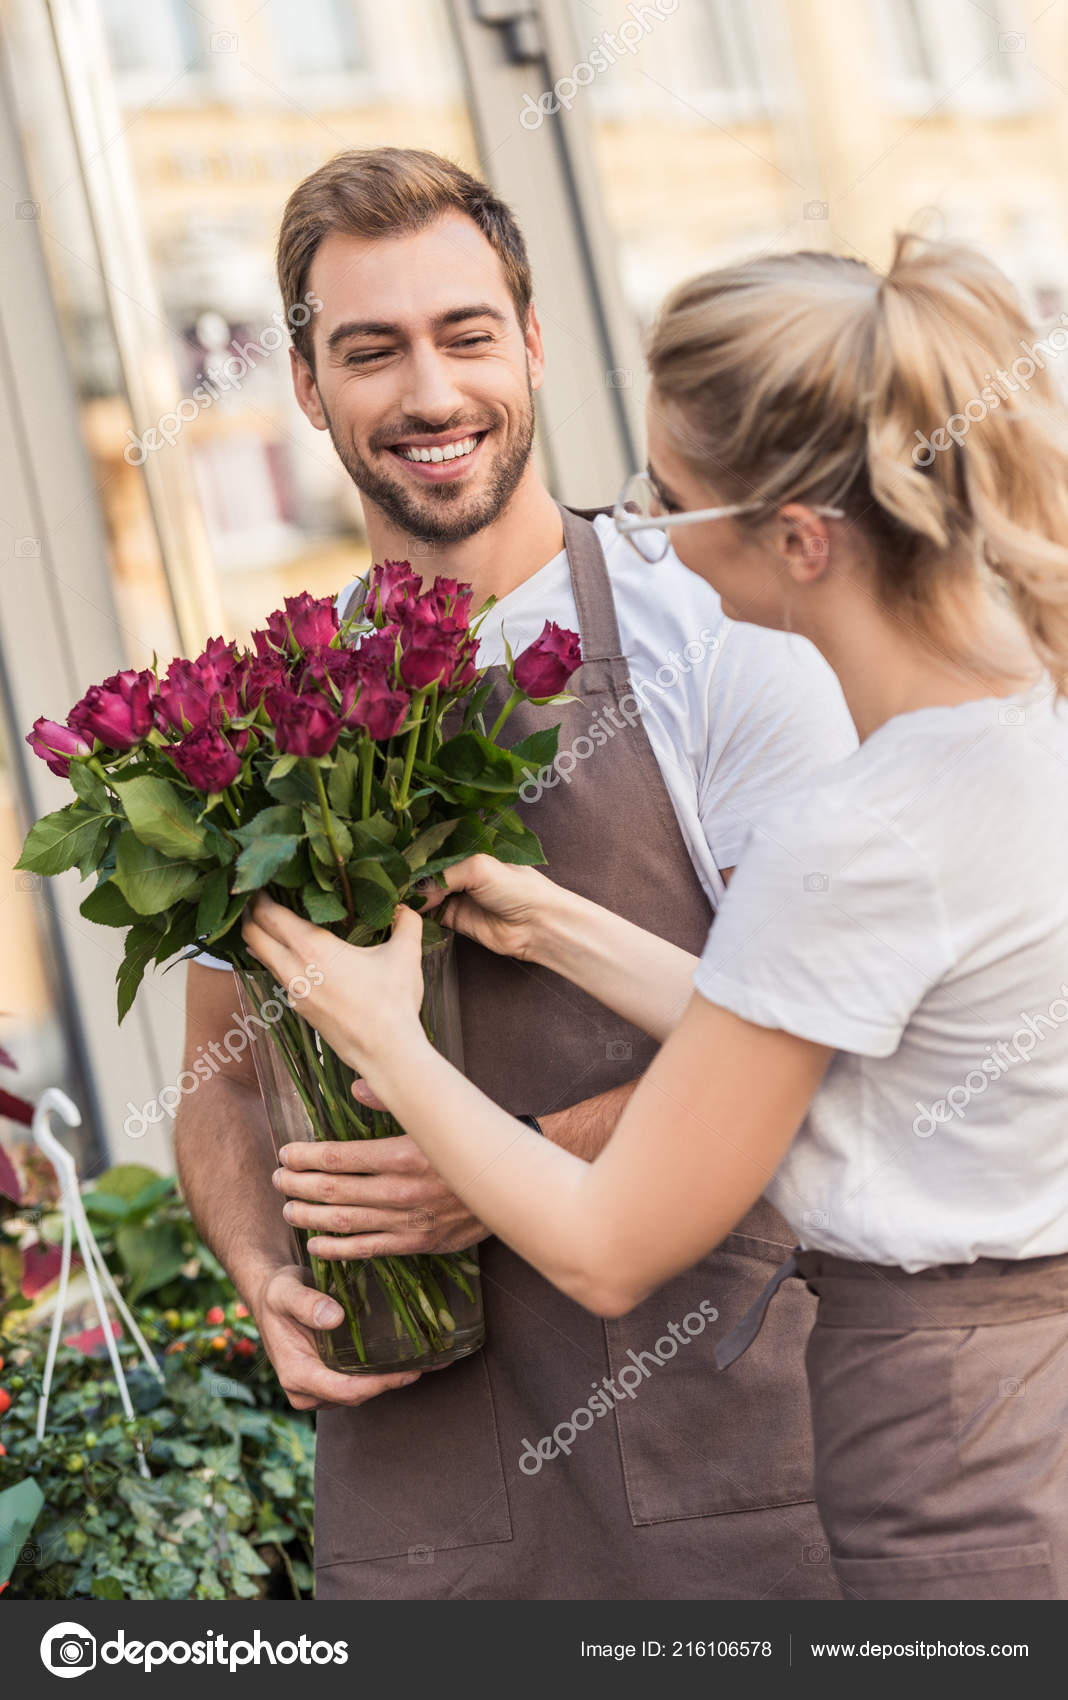 Happy Young Florists Holding Burgundy Roses Flower Shop